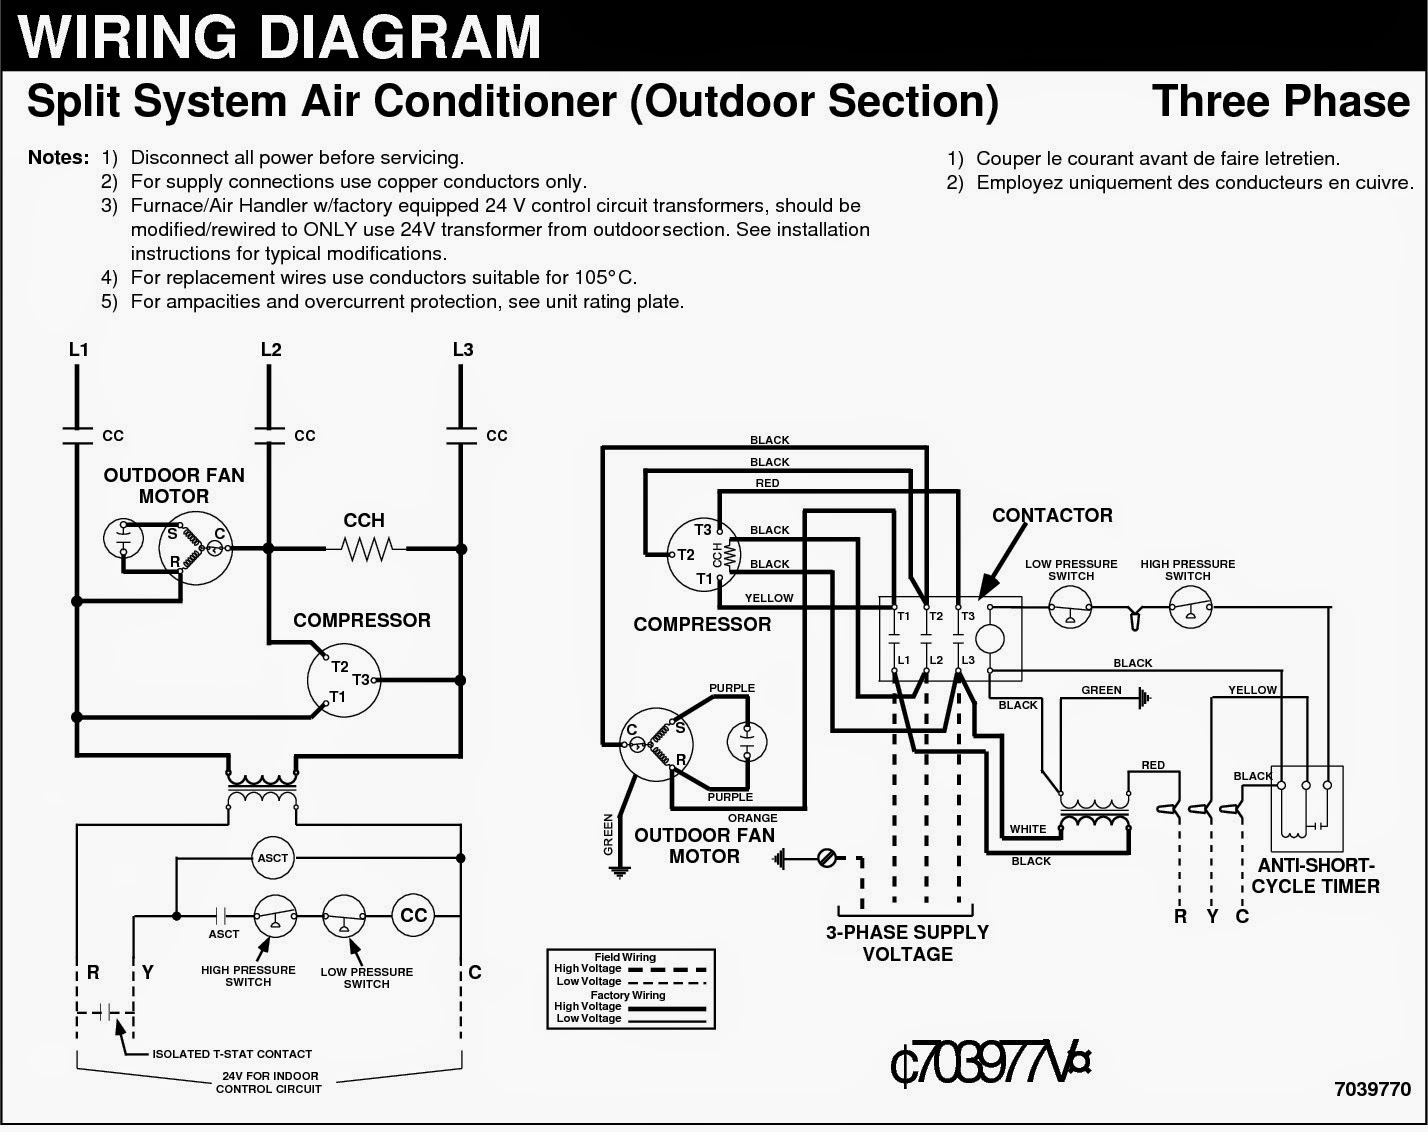 3+phase electrical wiring diagrams for air conditioning systems part two ac wiring diagram at creativeand.co